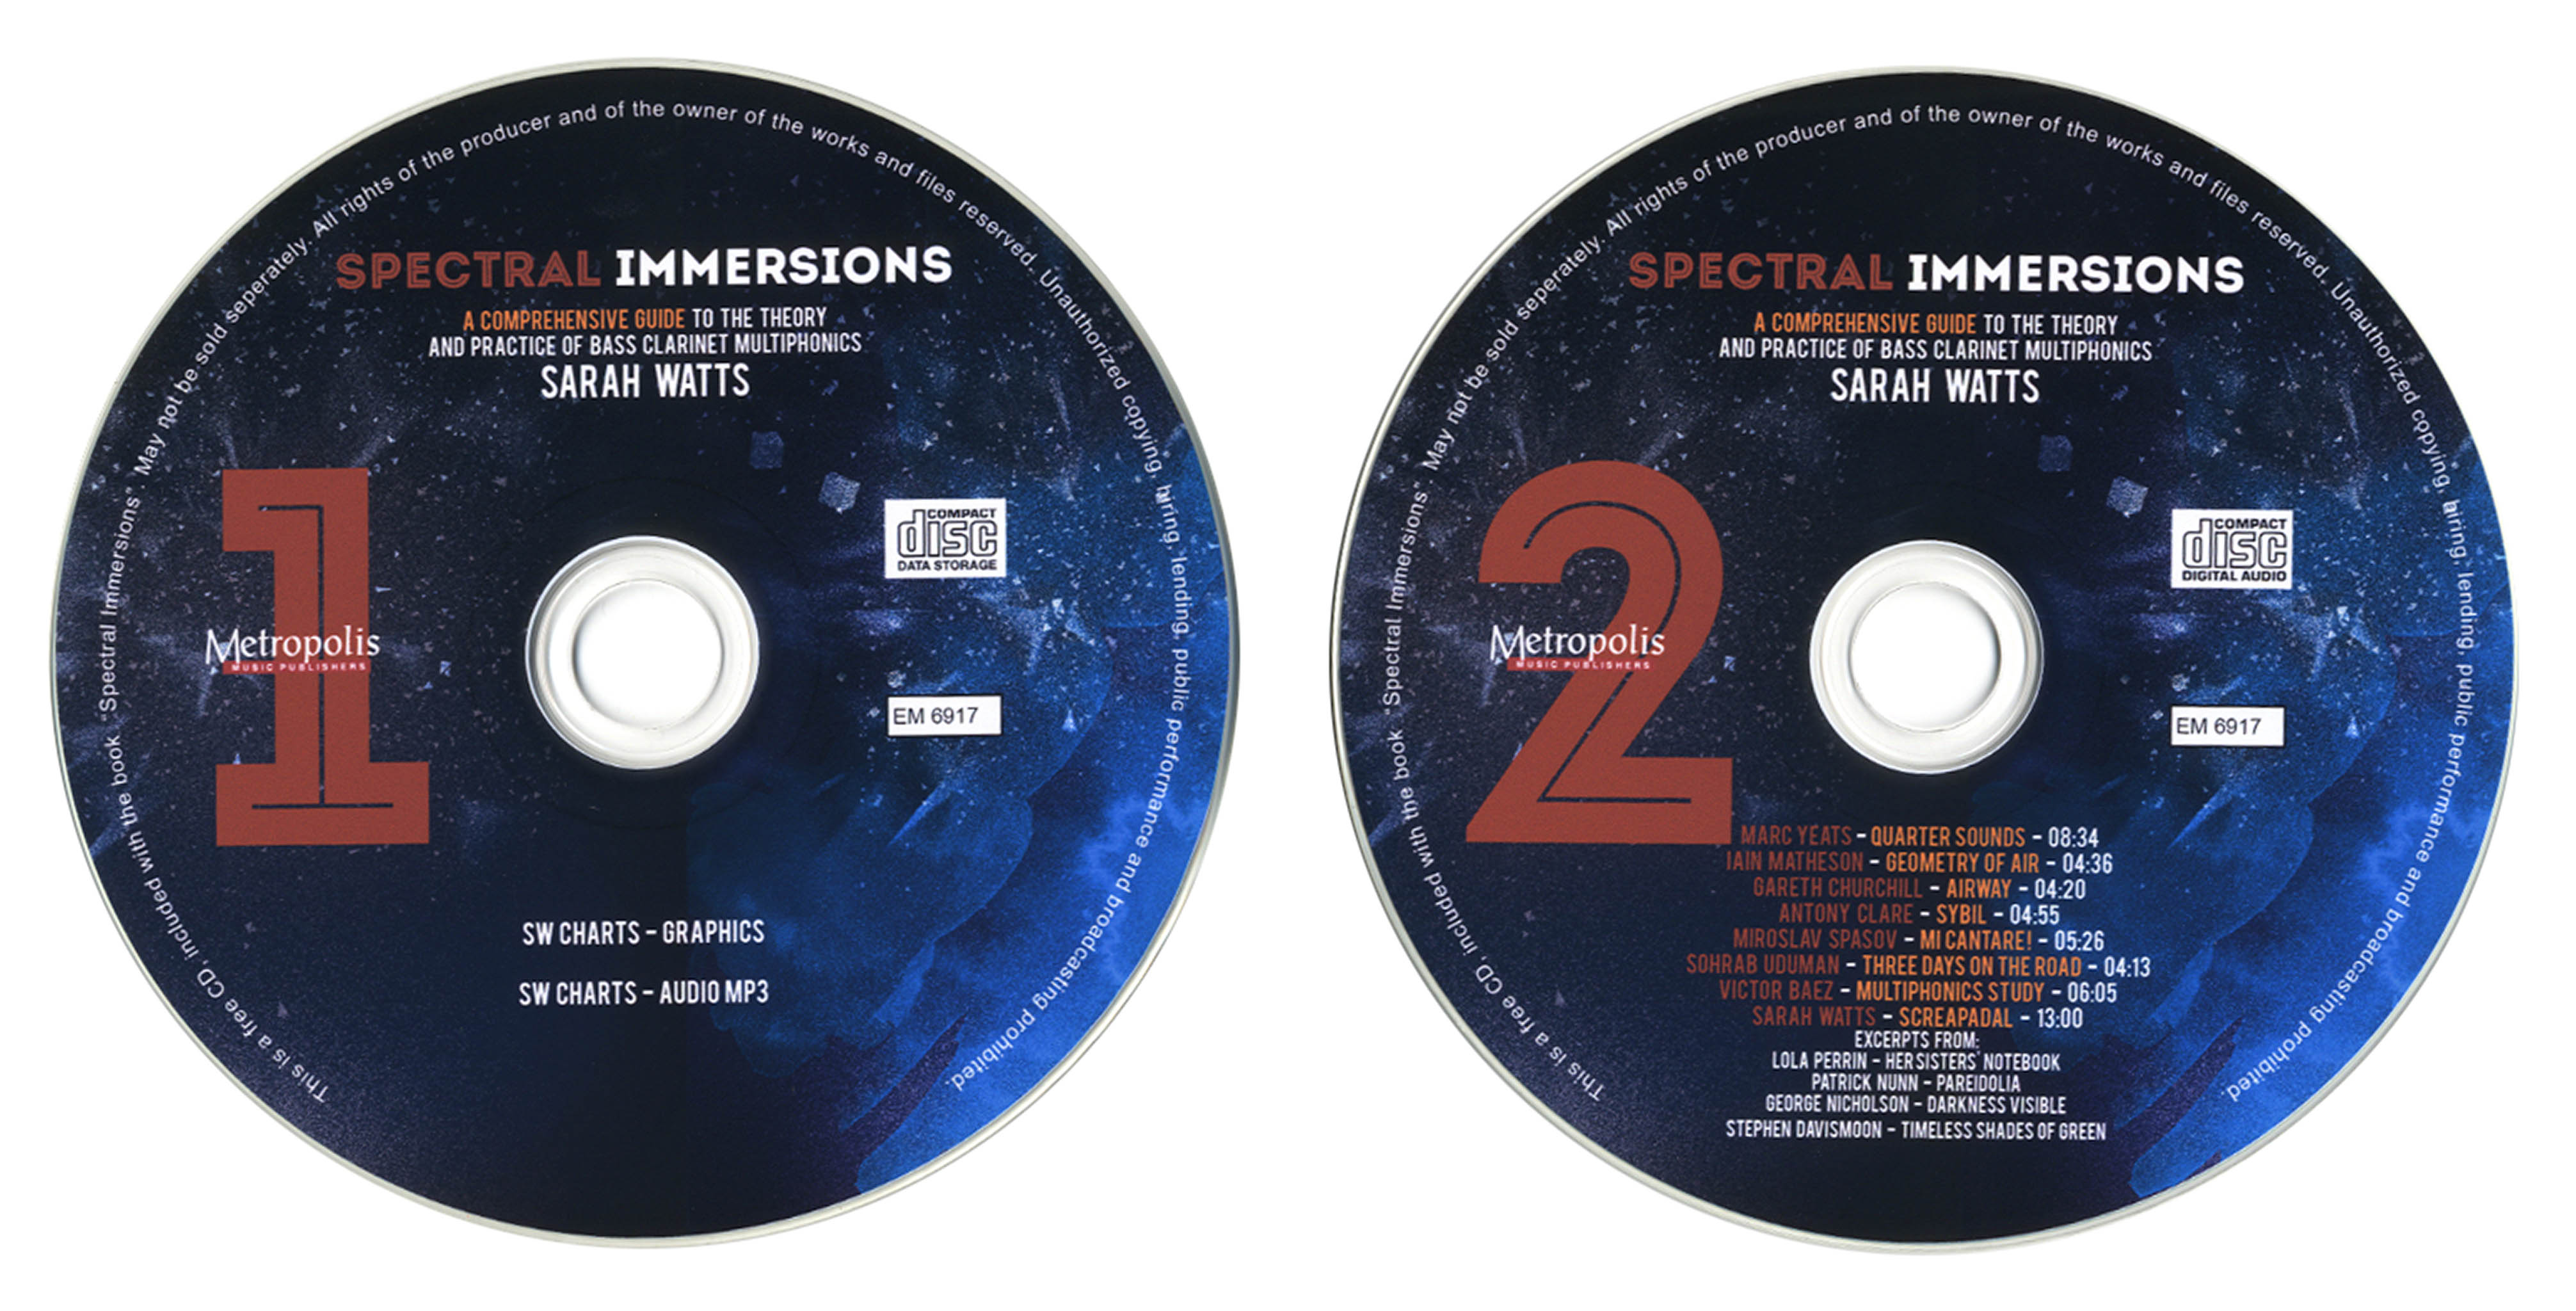 Spectral Immersions Audio CDs